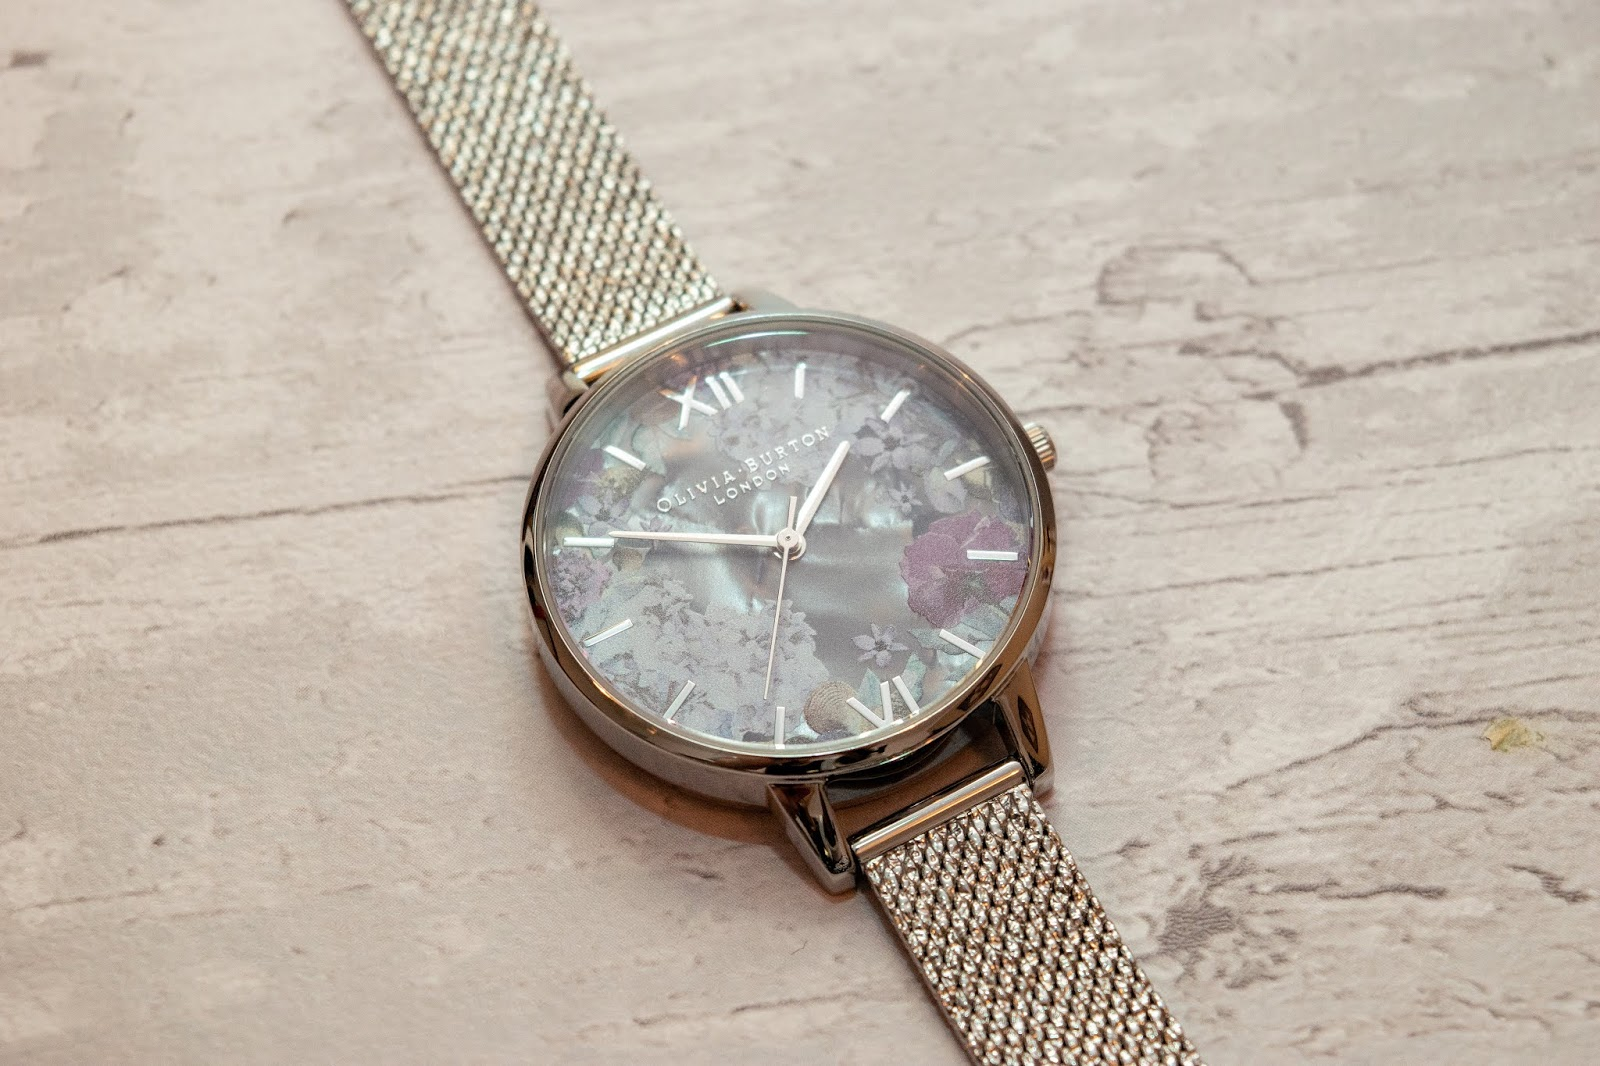 An Olivia Burton watch with a purple/lilac floral face and glittery silver strap.